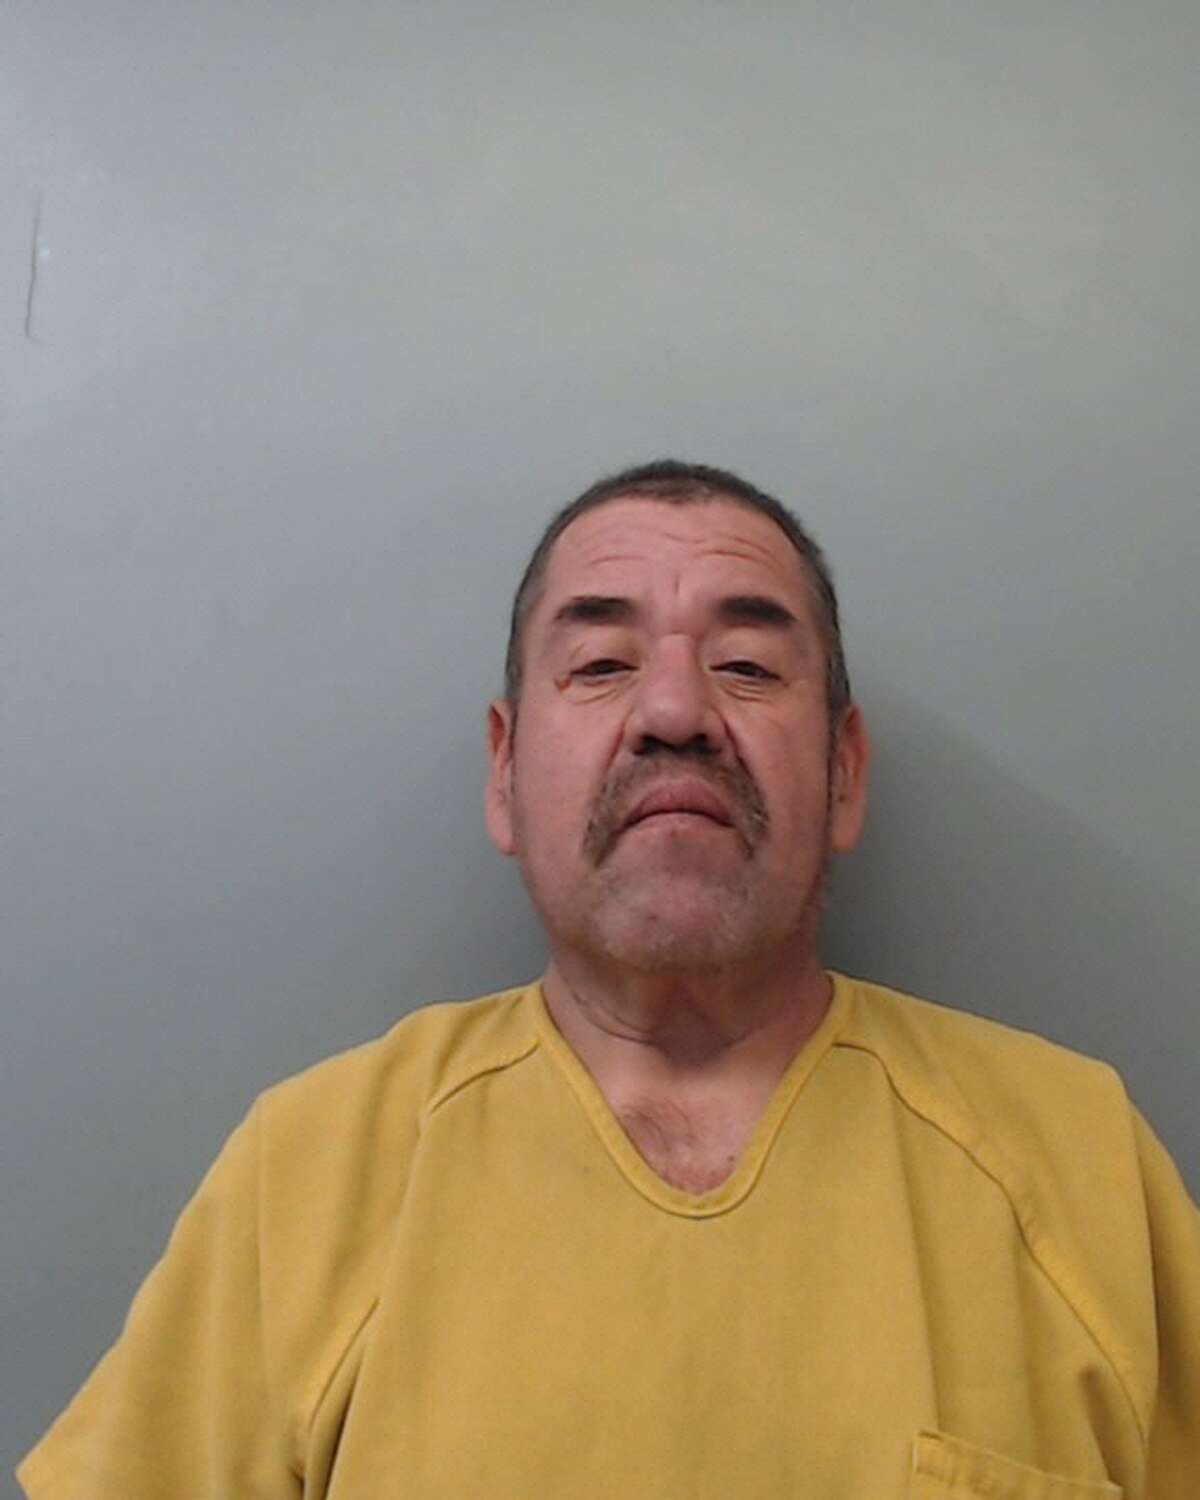 Reynaldo Martinez, 52, was arrested on the charge of silent, abusive calls to 911.